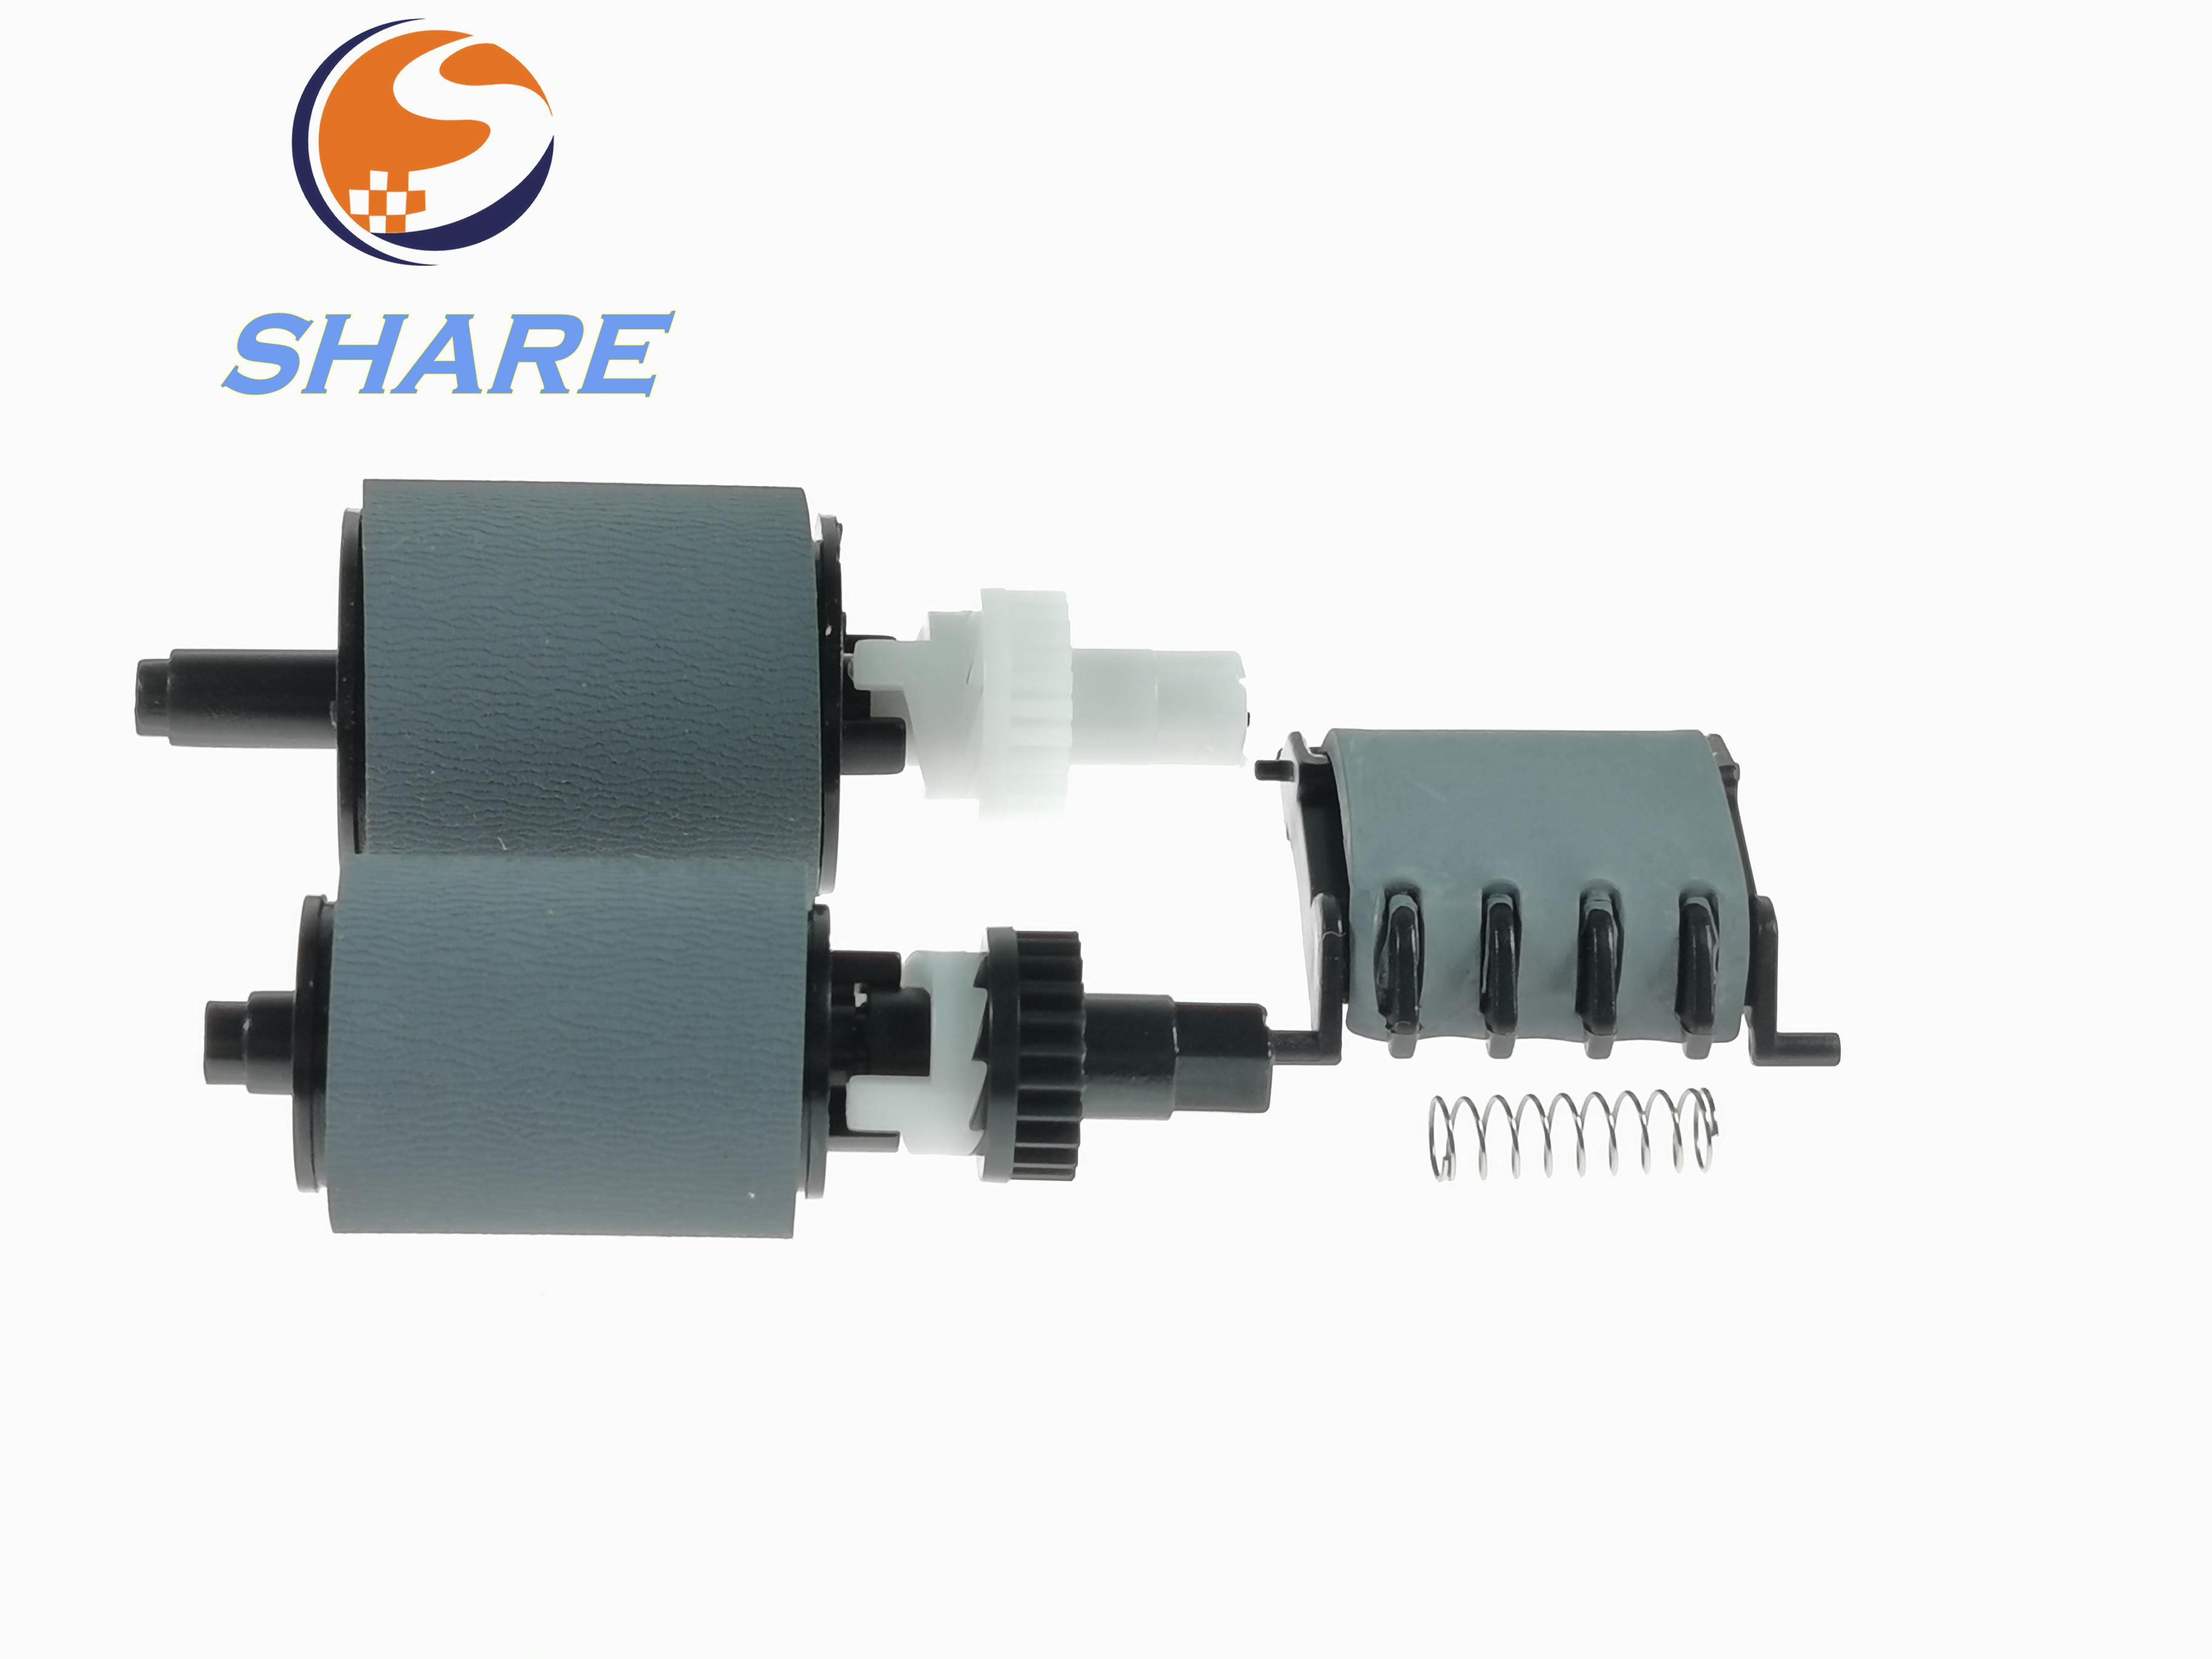 SHARE 1 SET ADF Pickup Roller Separation Pad Kit For HP Pro 400 M401 M425 M525 M521 M476 M570 M521